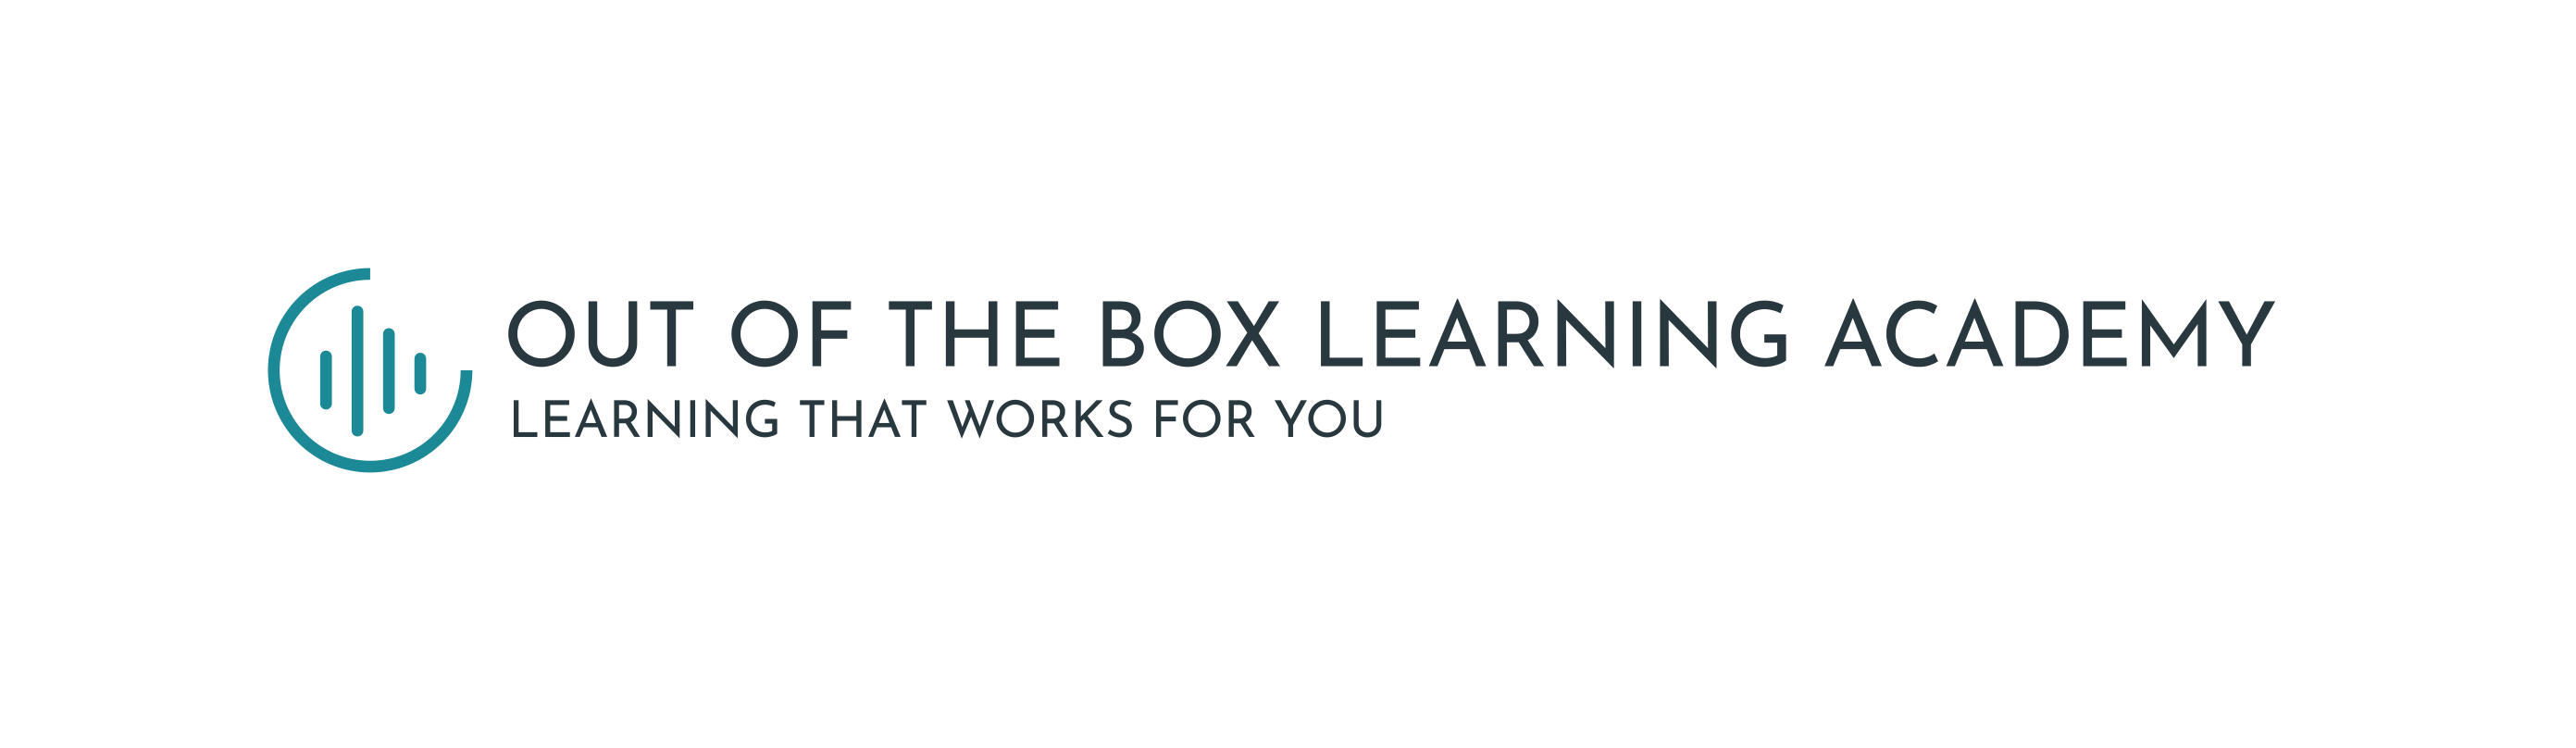 Out Of The Box Learning Academy